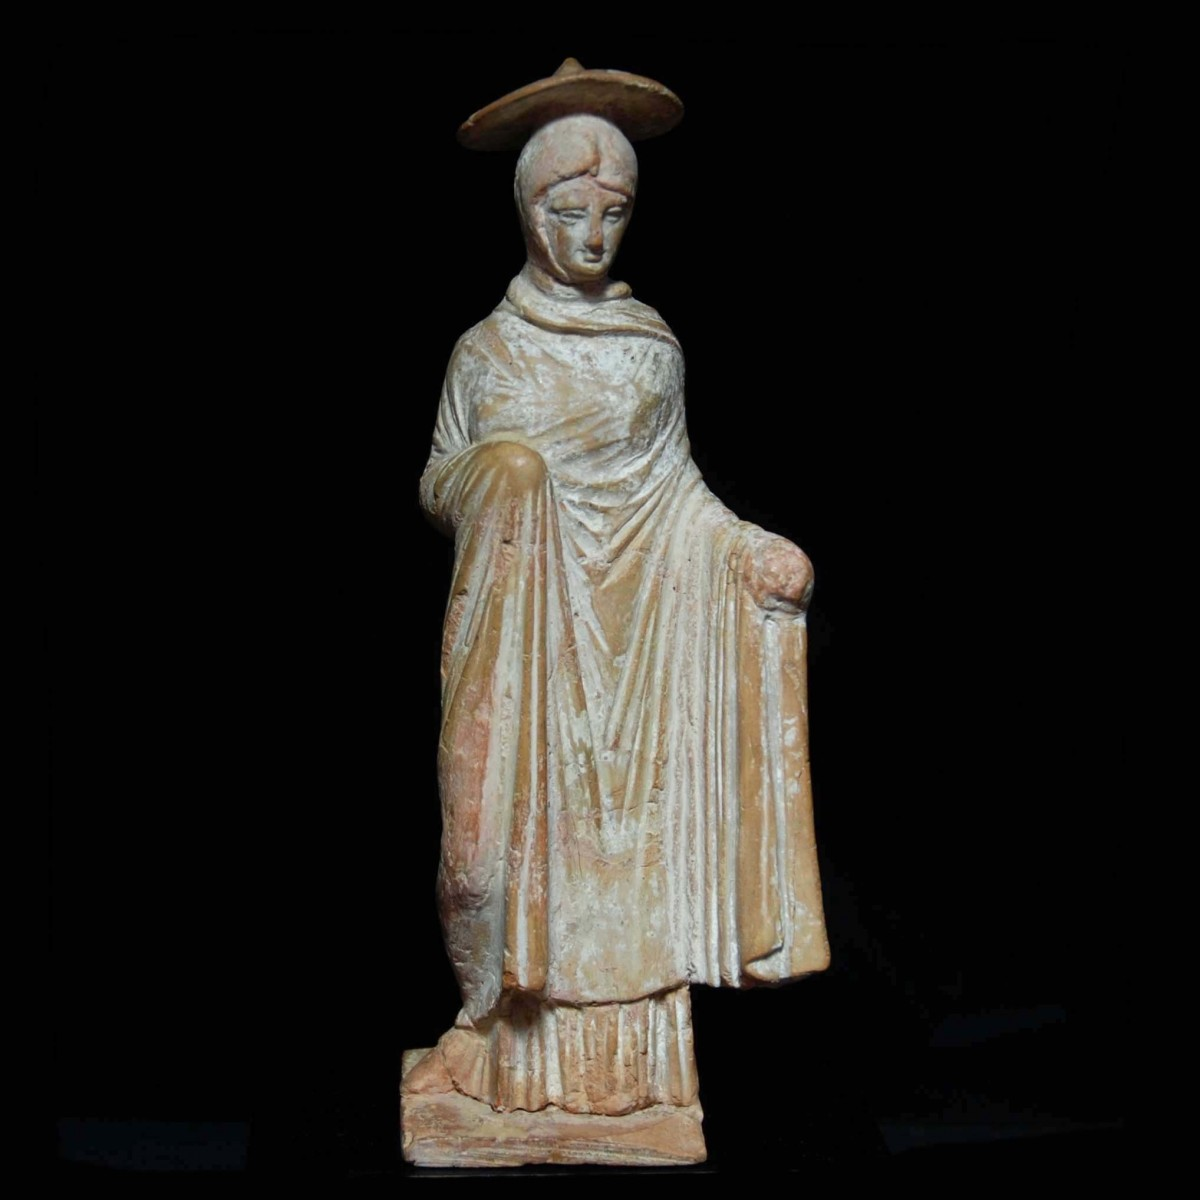 Tanagra statuette of a woman with sun hat front